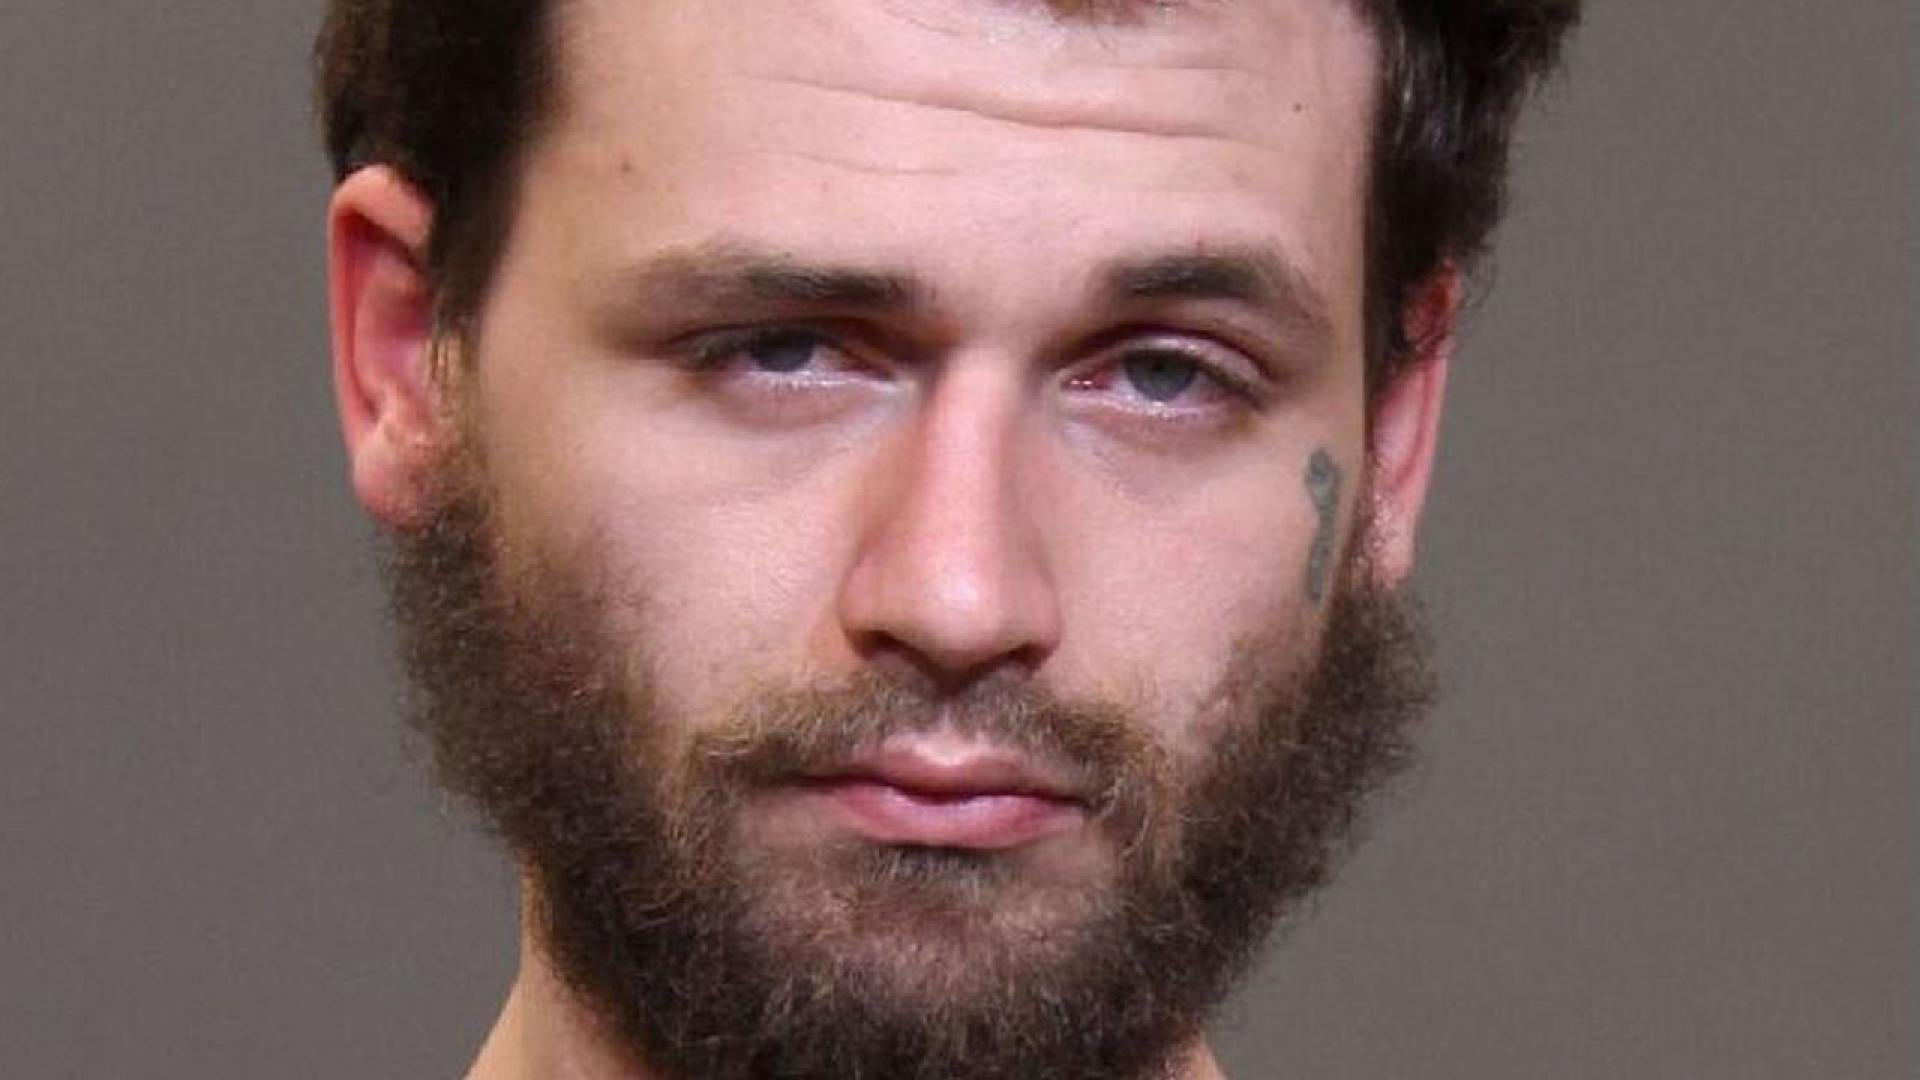 Police Revive Man From Overdose, He Allegedly Steals Their Car